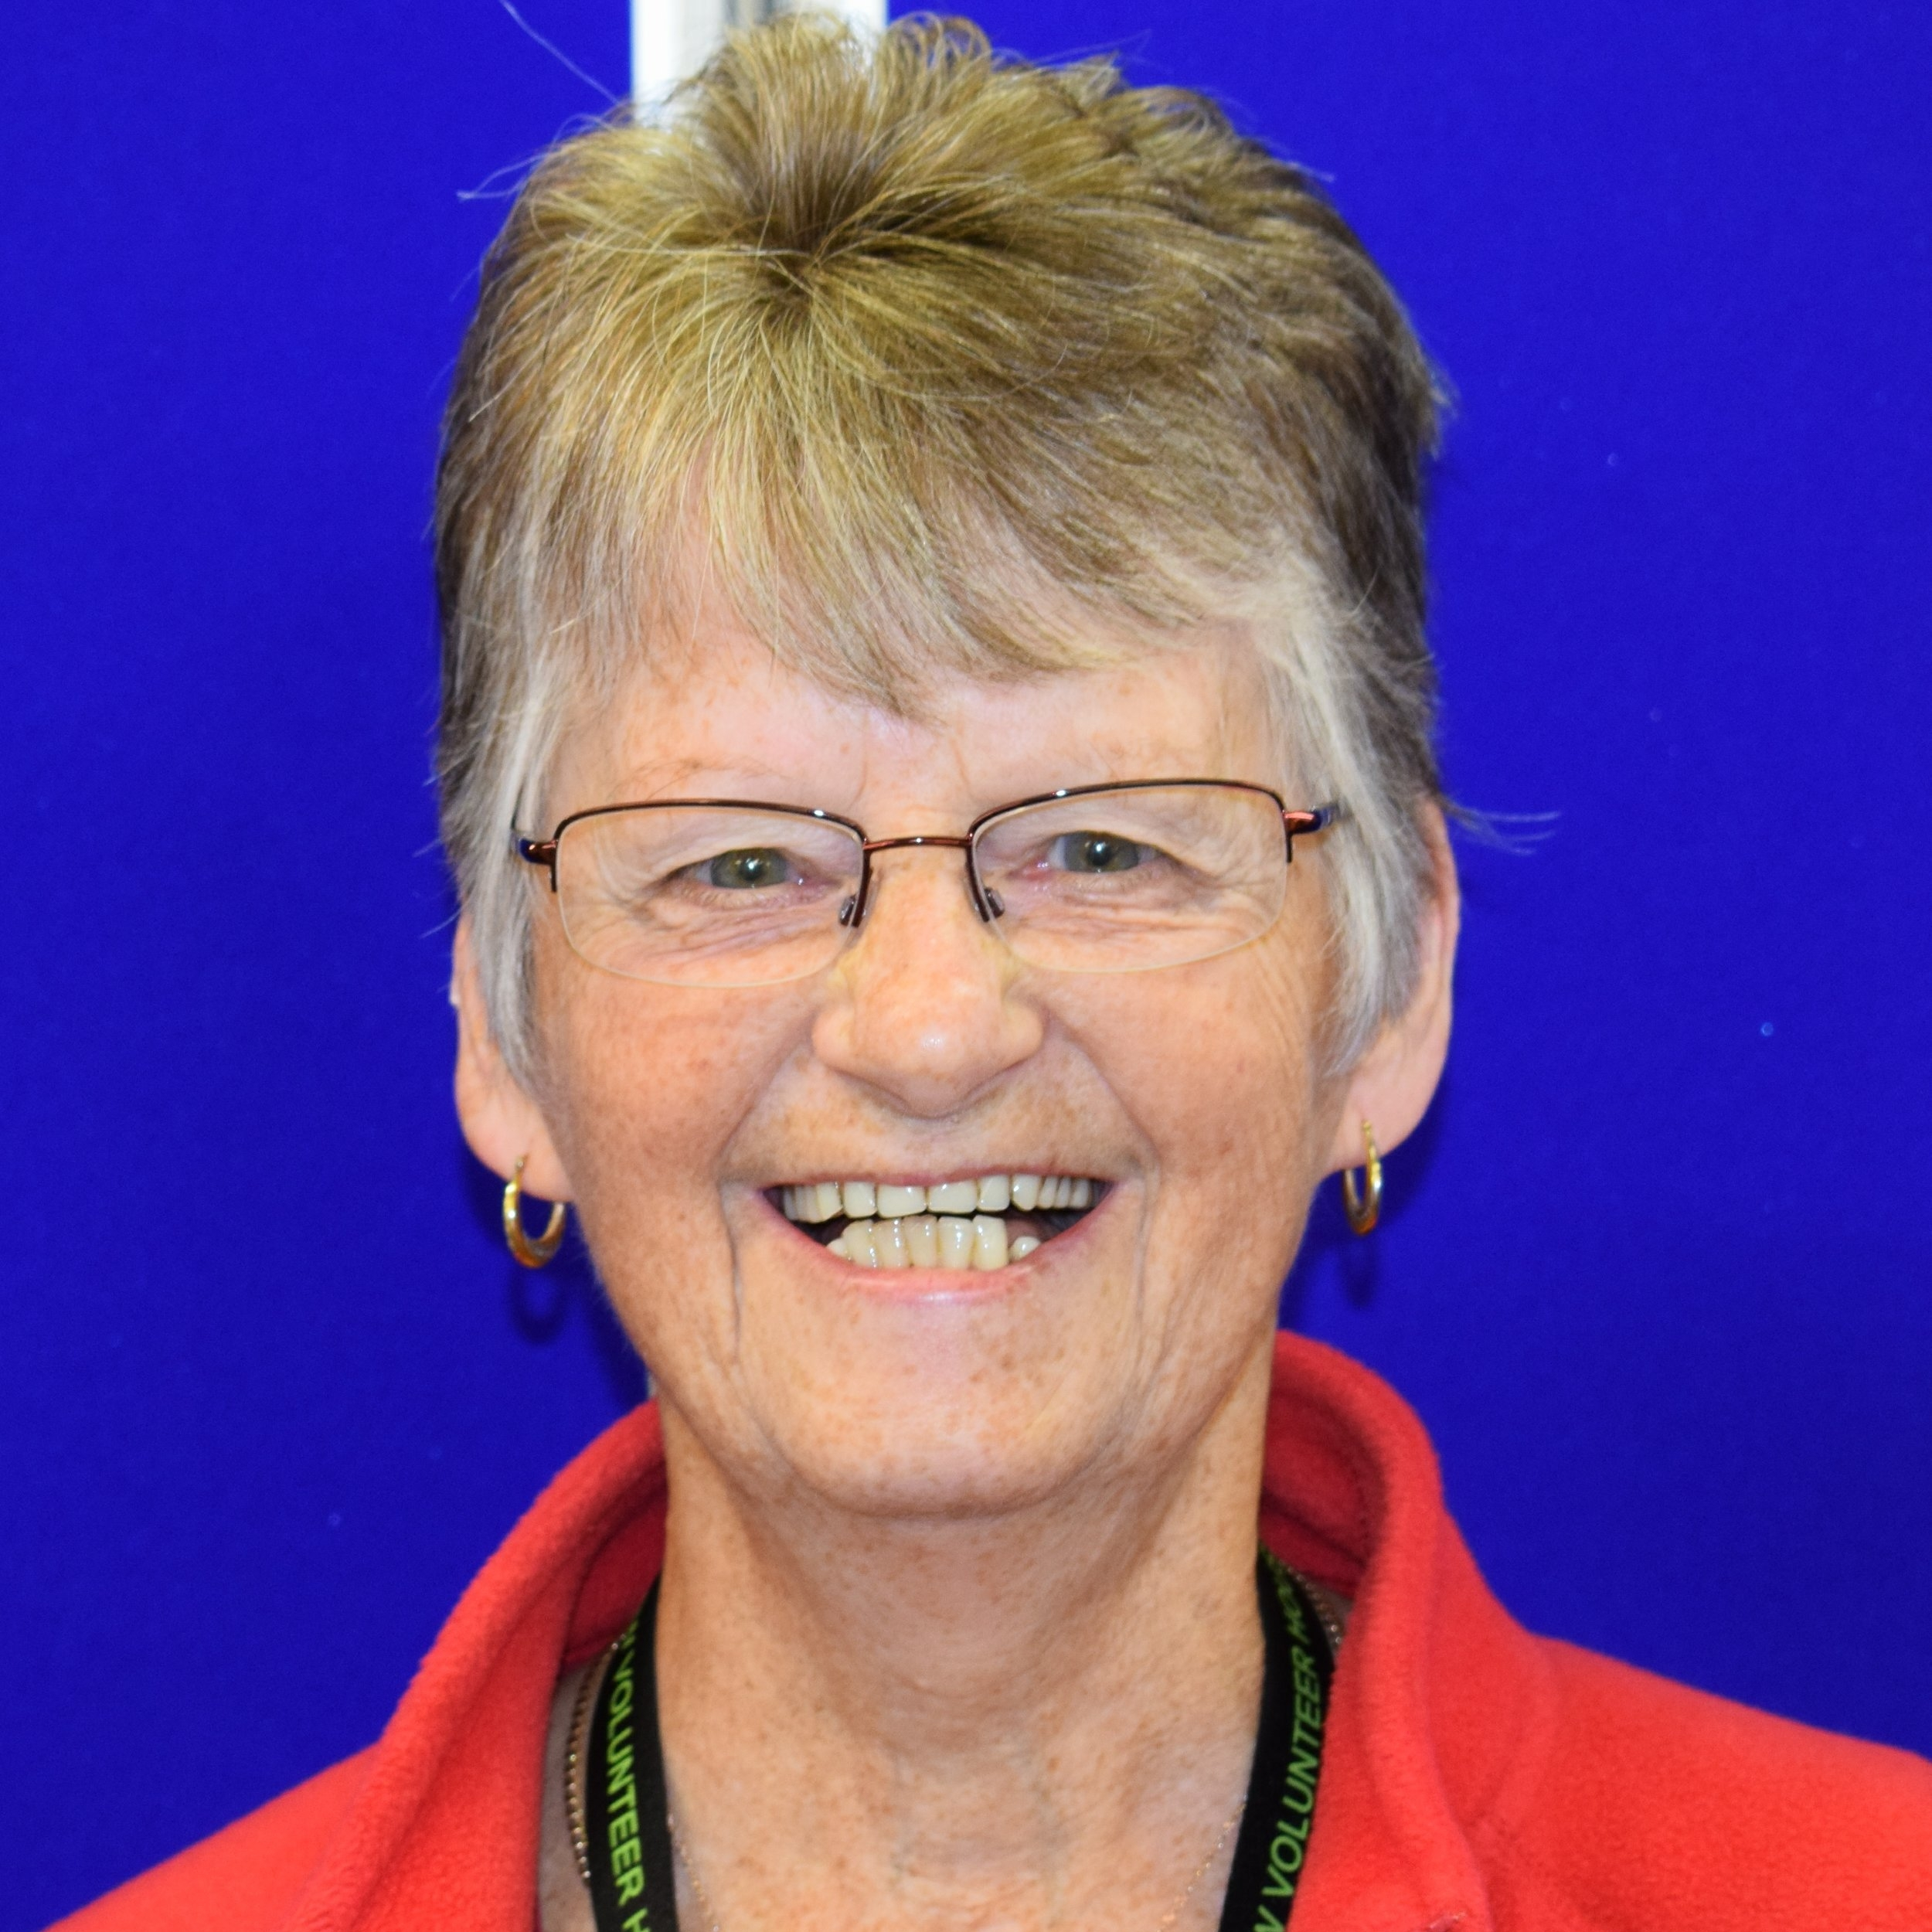 Betty McDonaldSenior Network Support Worker - Betty has been involved in youth work in Fife for over 40yrs joining Youth 1st over 25yrs ago. She has enjoyed every minute of it. Many things have changed over the years but Youth 1st has developed into an organisation we should all be proud of. Betty is Senior Network Support Worker who enjoys meeting new youth workers, helping and encouraging them through the Youth 1st training programme to develop their skills. Betty works well with all age groups and finds the most rewarding part of the work is seeing the young people develop skills, helping them through a number of training courses which builds on their confidence and self-esteem. In her spare time Betty likes walking with friends and spending time with family.